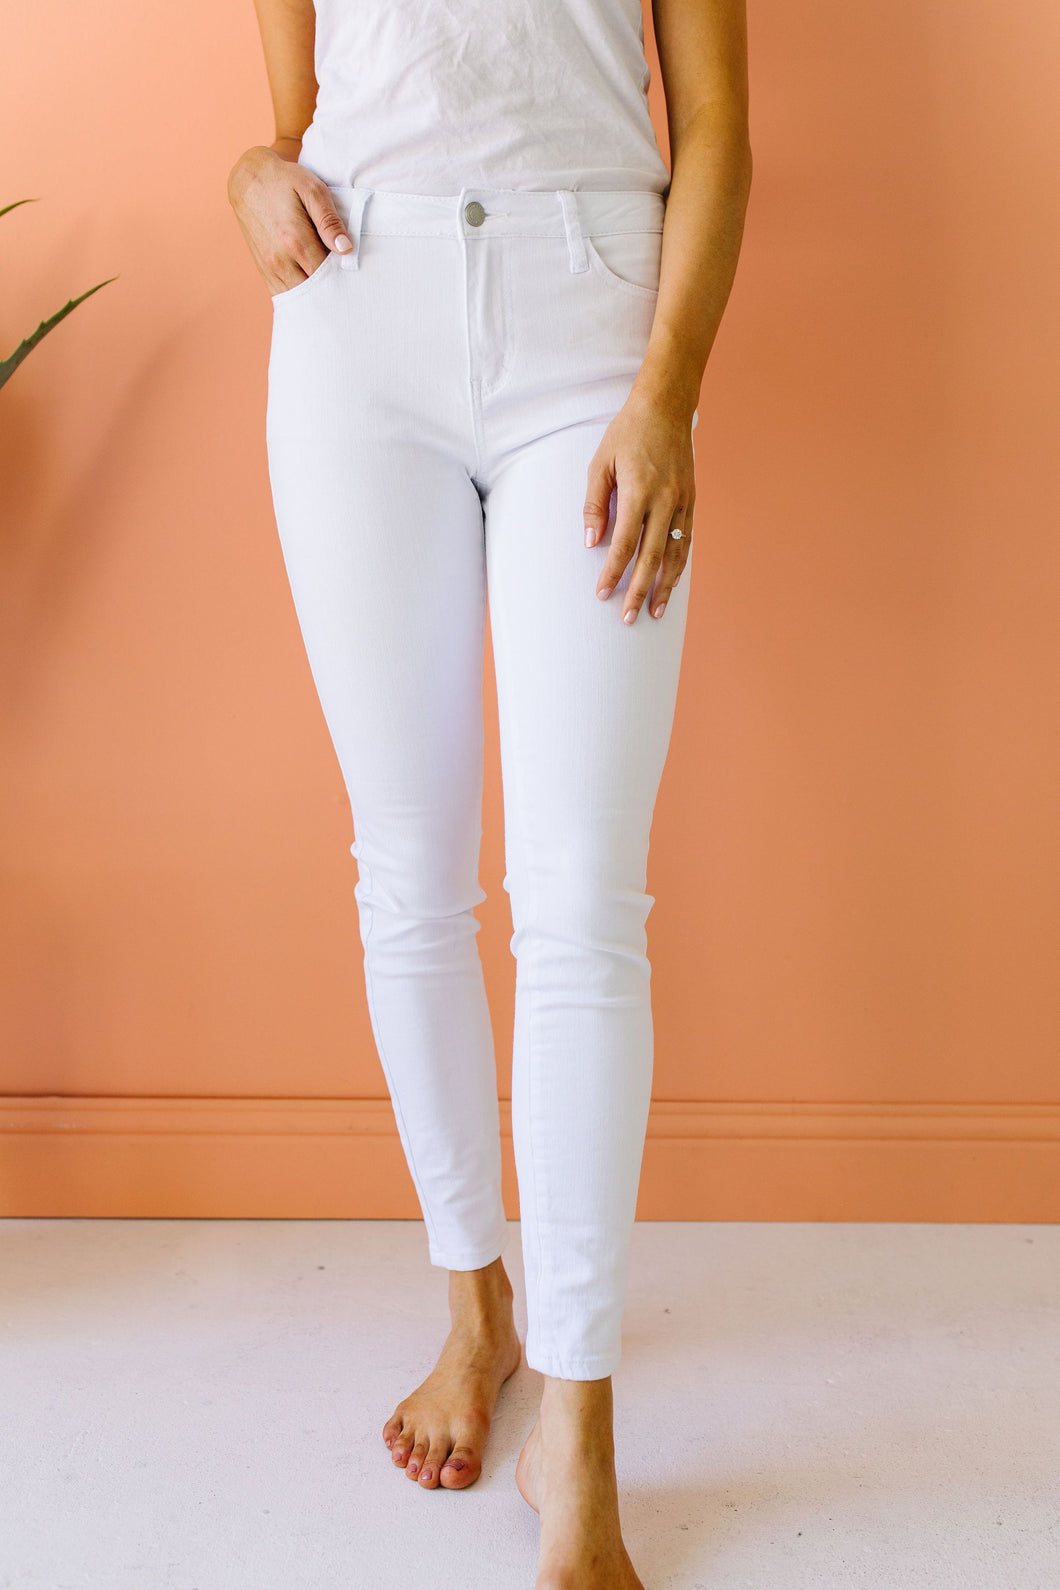 Keeping It Tight White Jeans - Smith & Vena Online Boutique